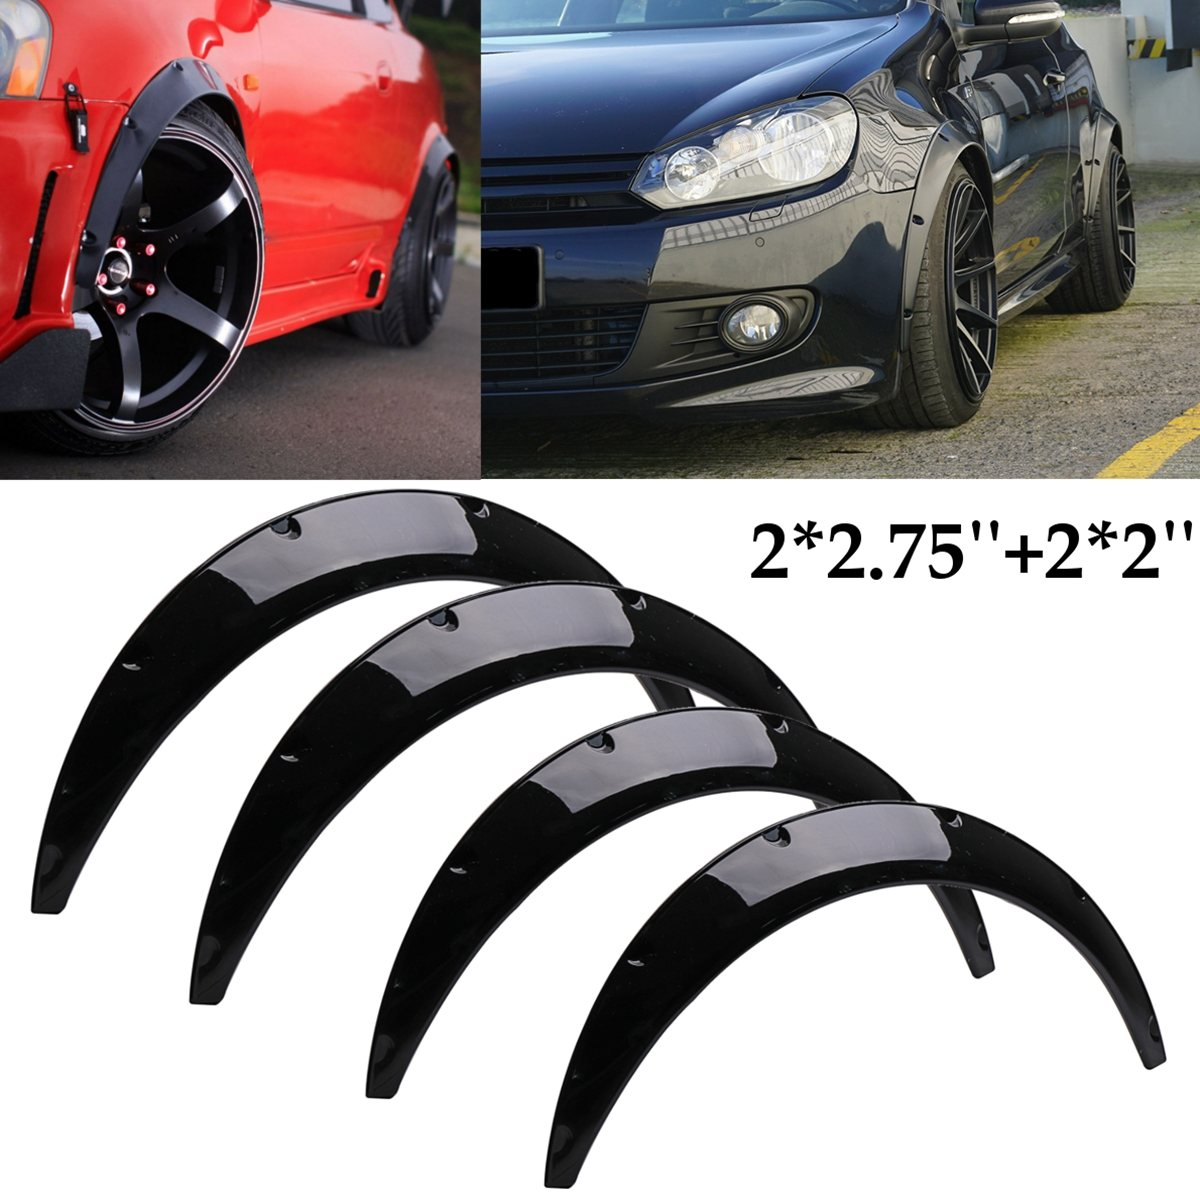 #BFD-UNIZG-PU Universal Flexible Car Body For Fender Flares Extension Wide Wheel Arches For Mazda/Nissan MX-5 Miata RX-7 350Z аксессуар bbb bfd 13f mtb protector белый